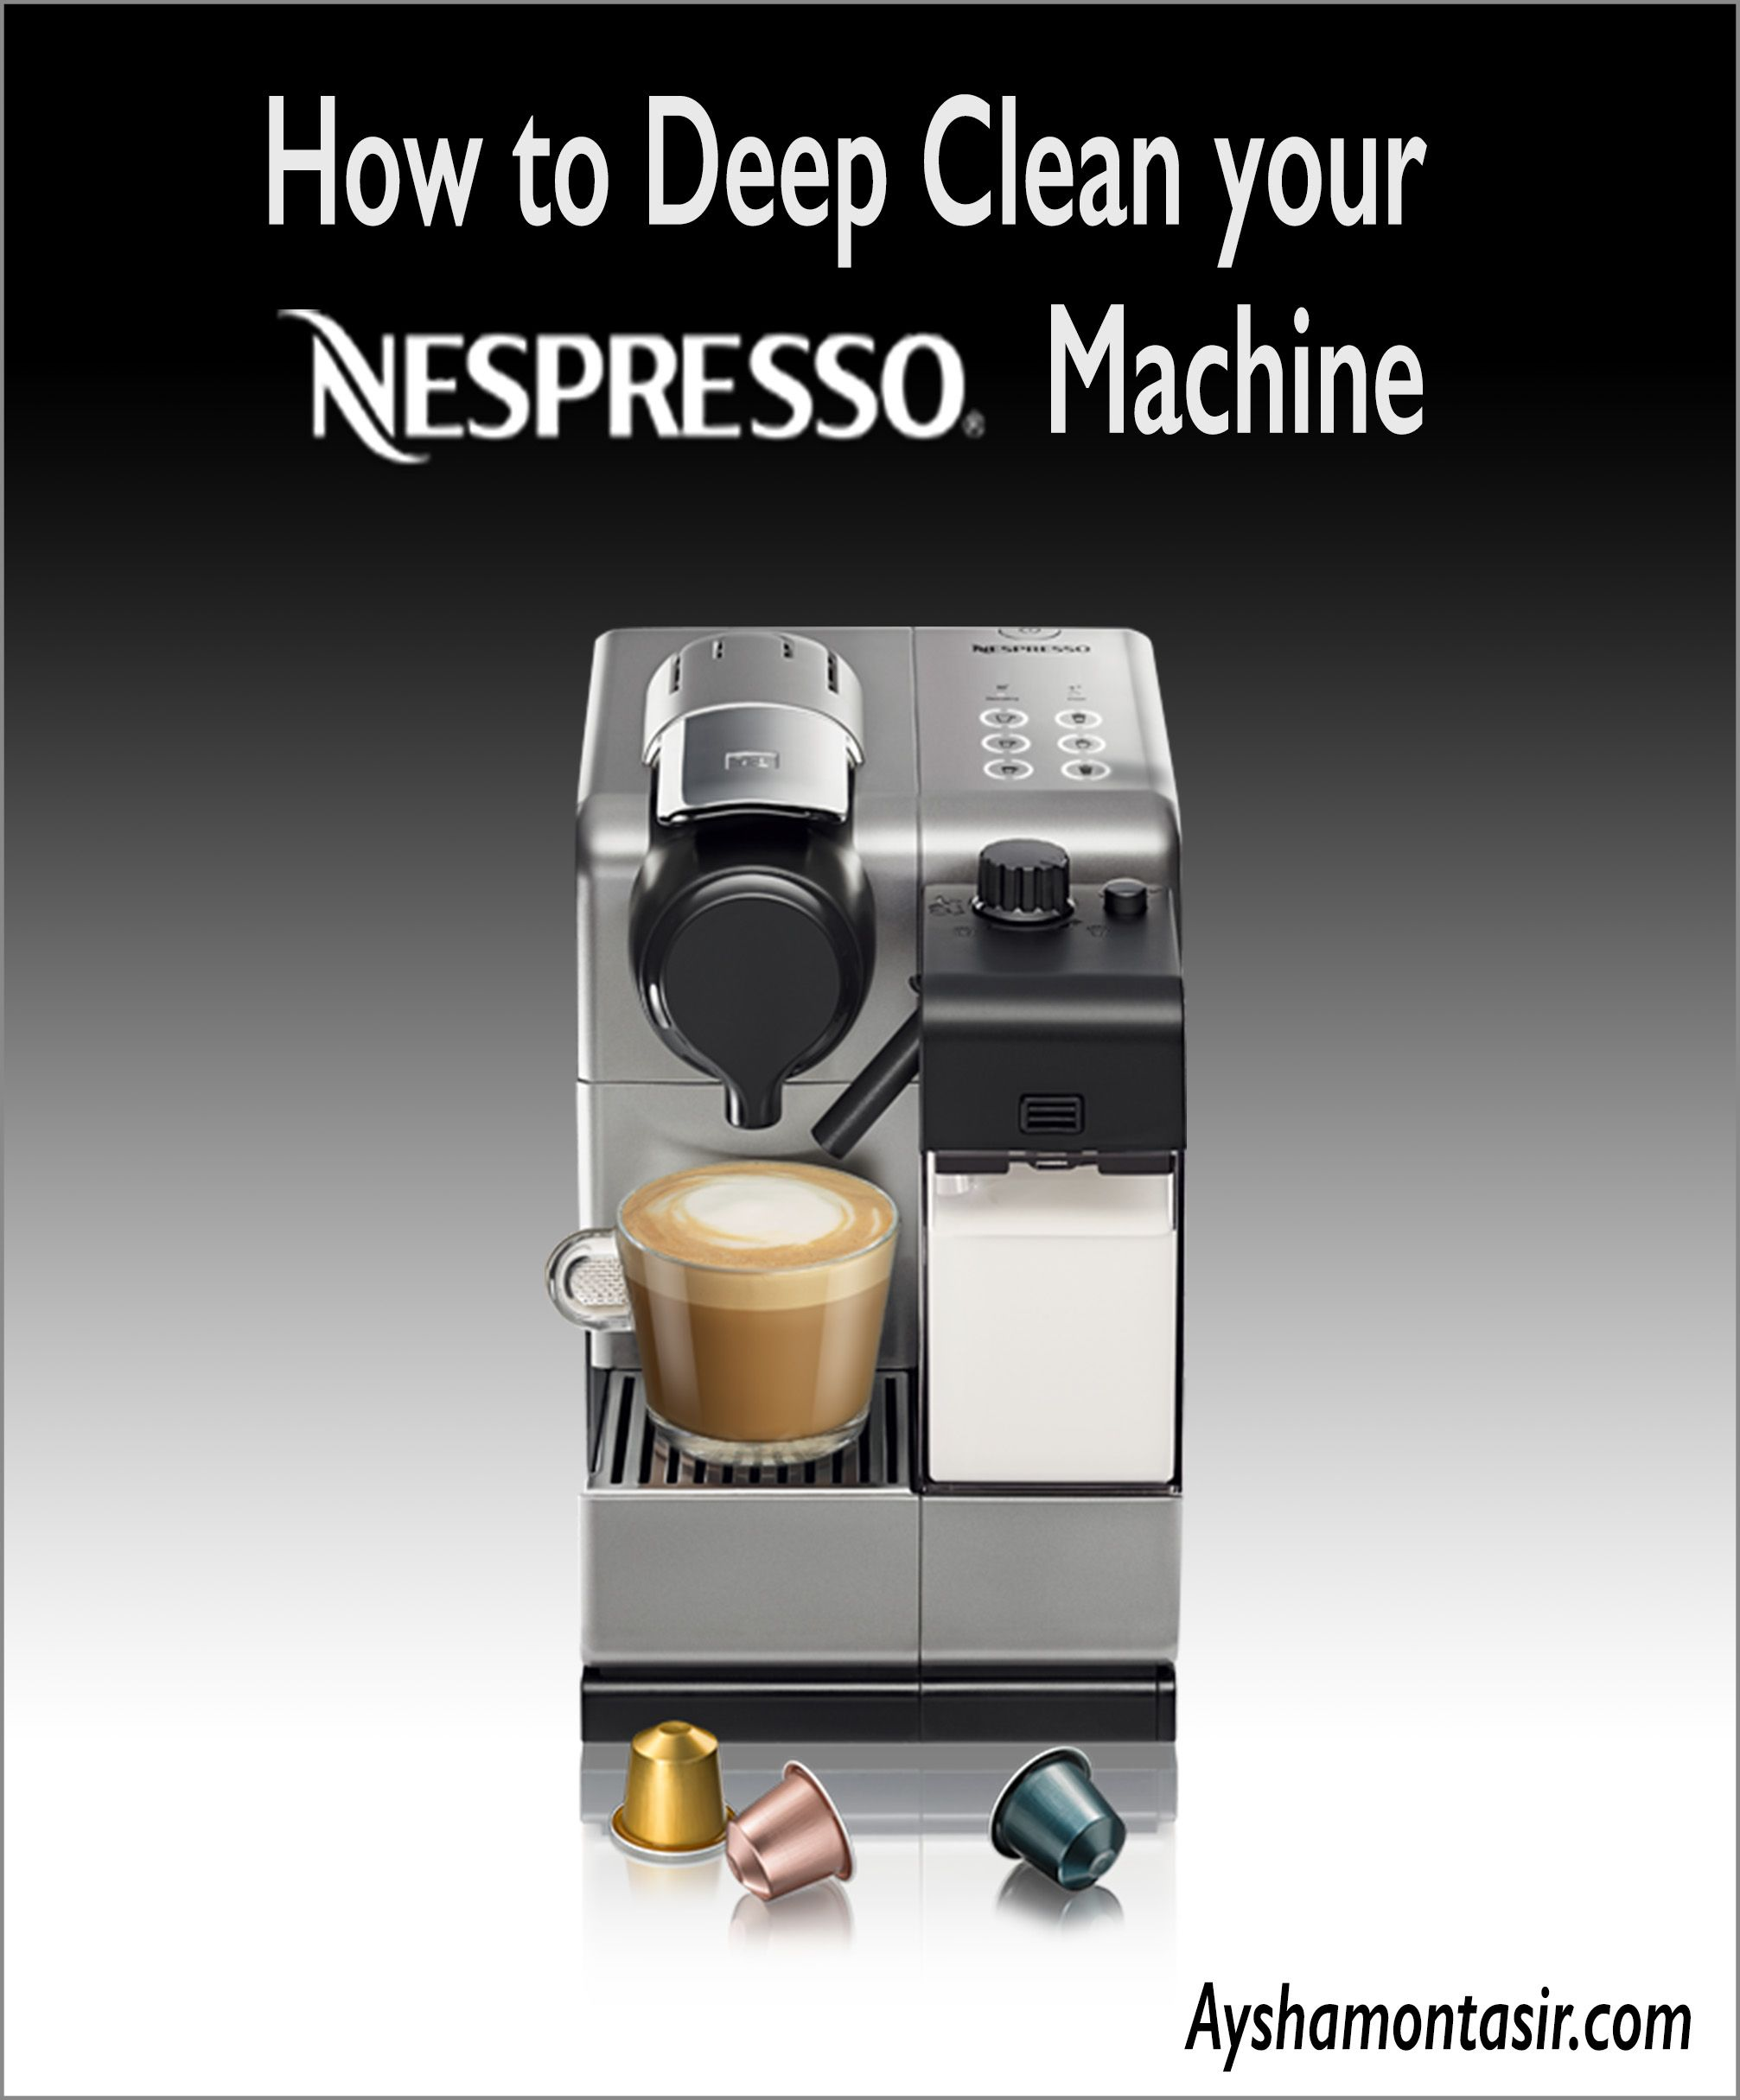 How To Deep Clean Your Nespresso Machine Nespresso Deep Cleaning Nespresso Machine